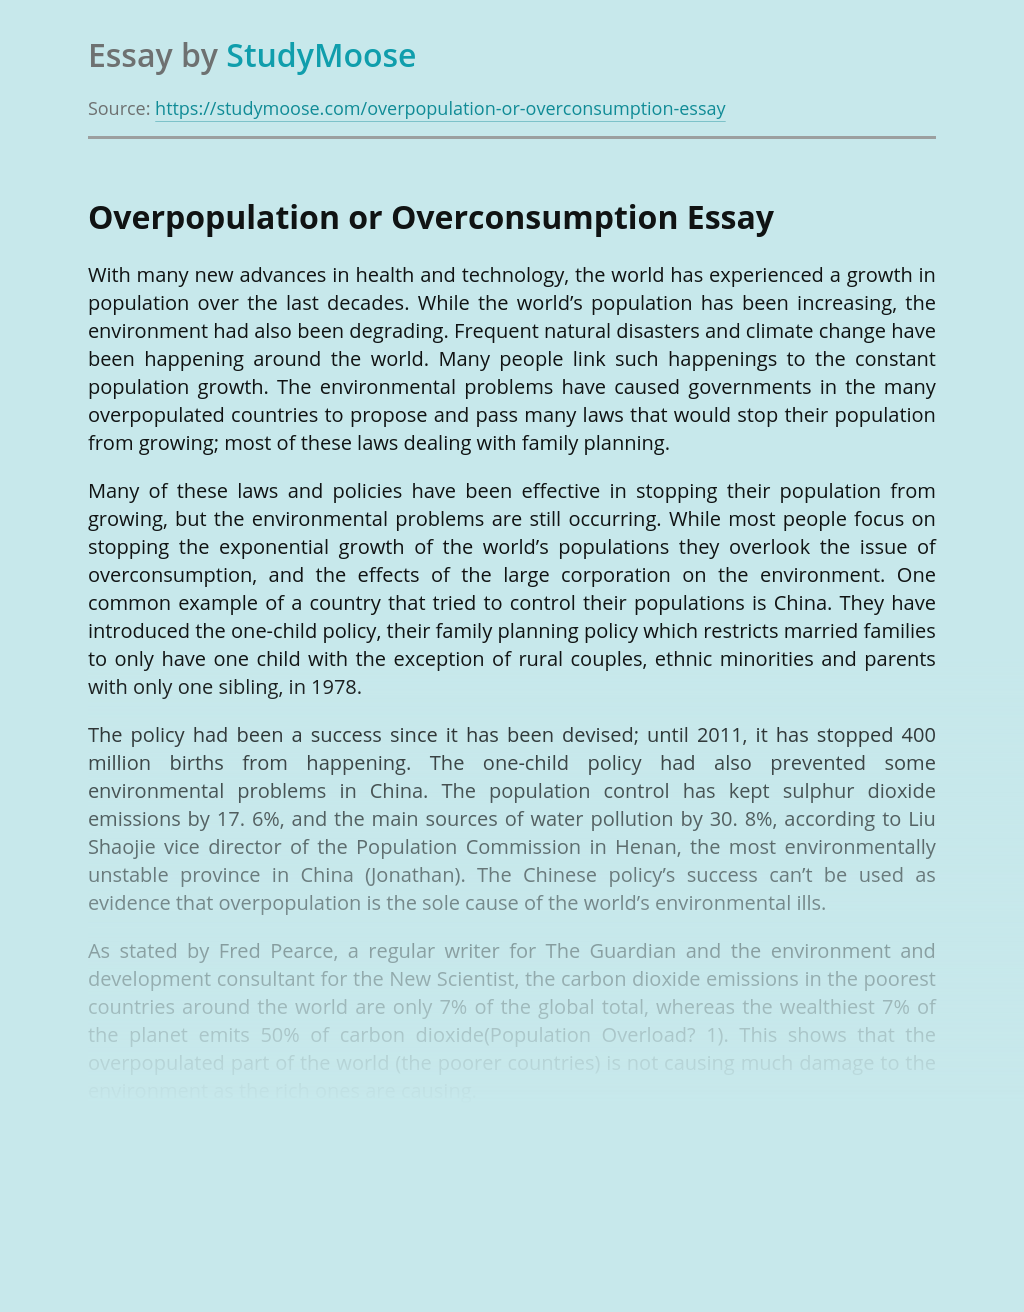 Overpopulation or Overconsumption